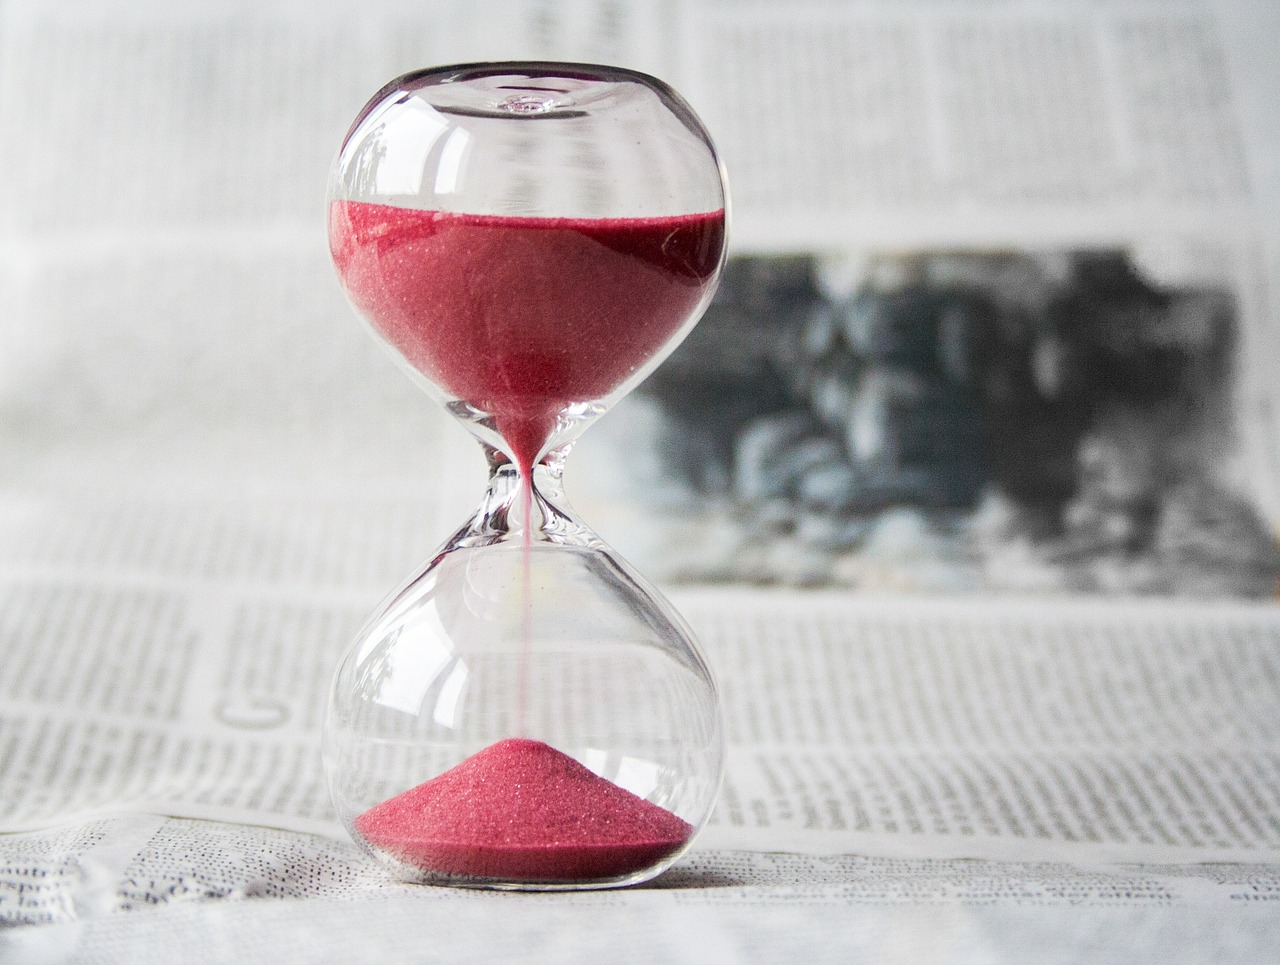 an hourglass with red sand